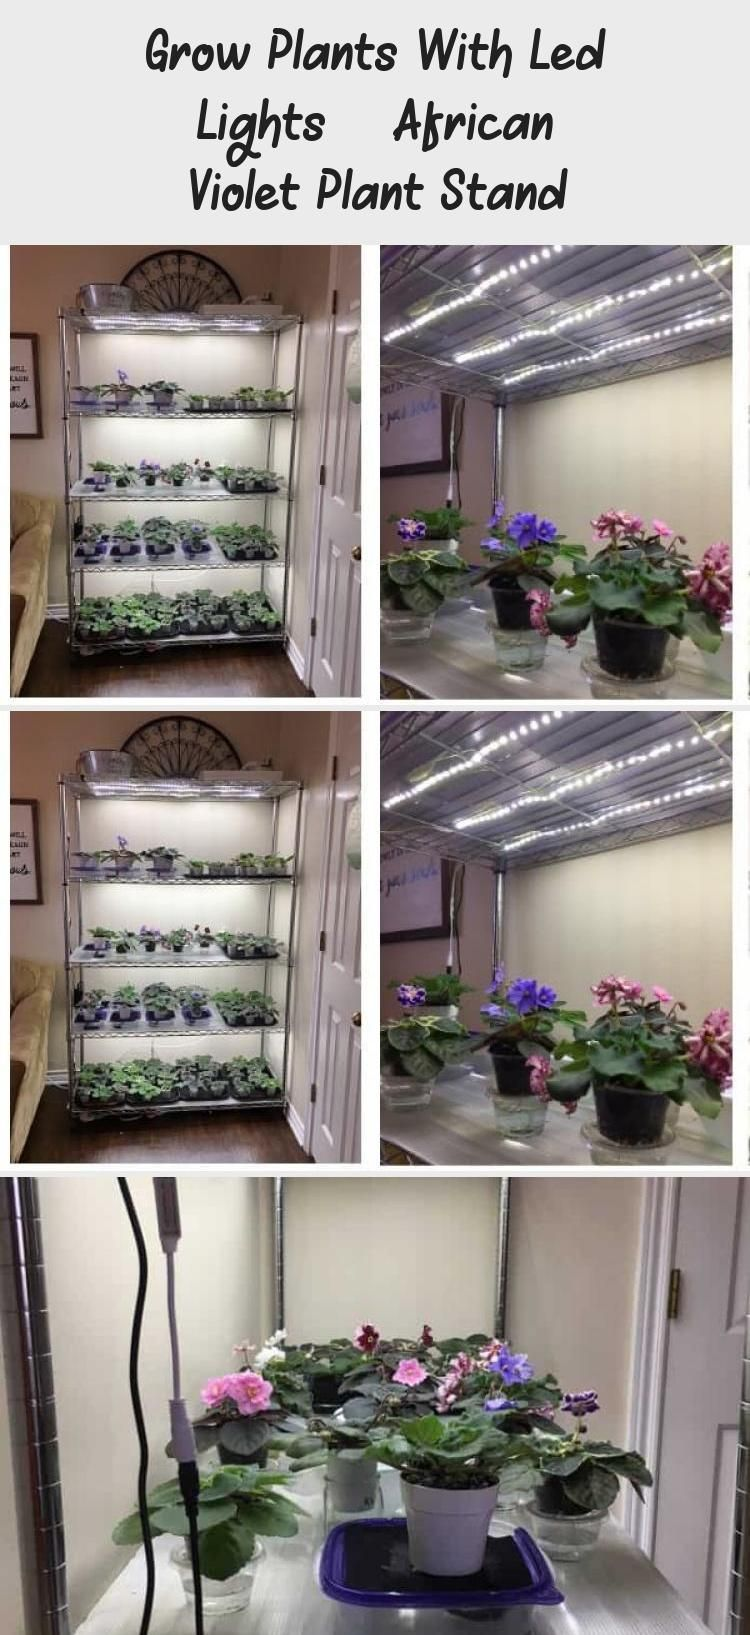 Indoor Diy Plant Stand With Led Lights Grow Your Plants With Led Lights That Diy Grow Indoor Indoorgardensetup Led Lights Plant Plants Stand In 2020